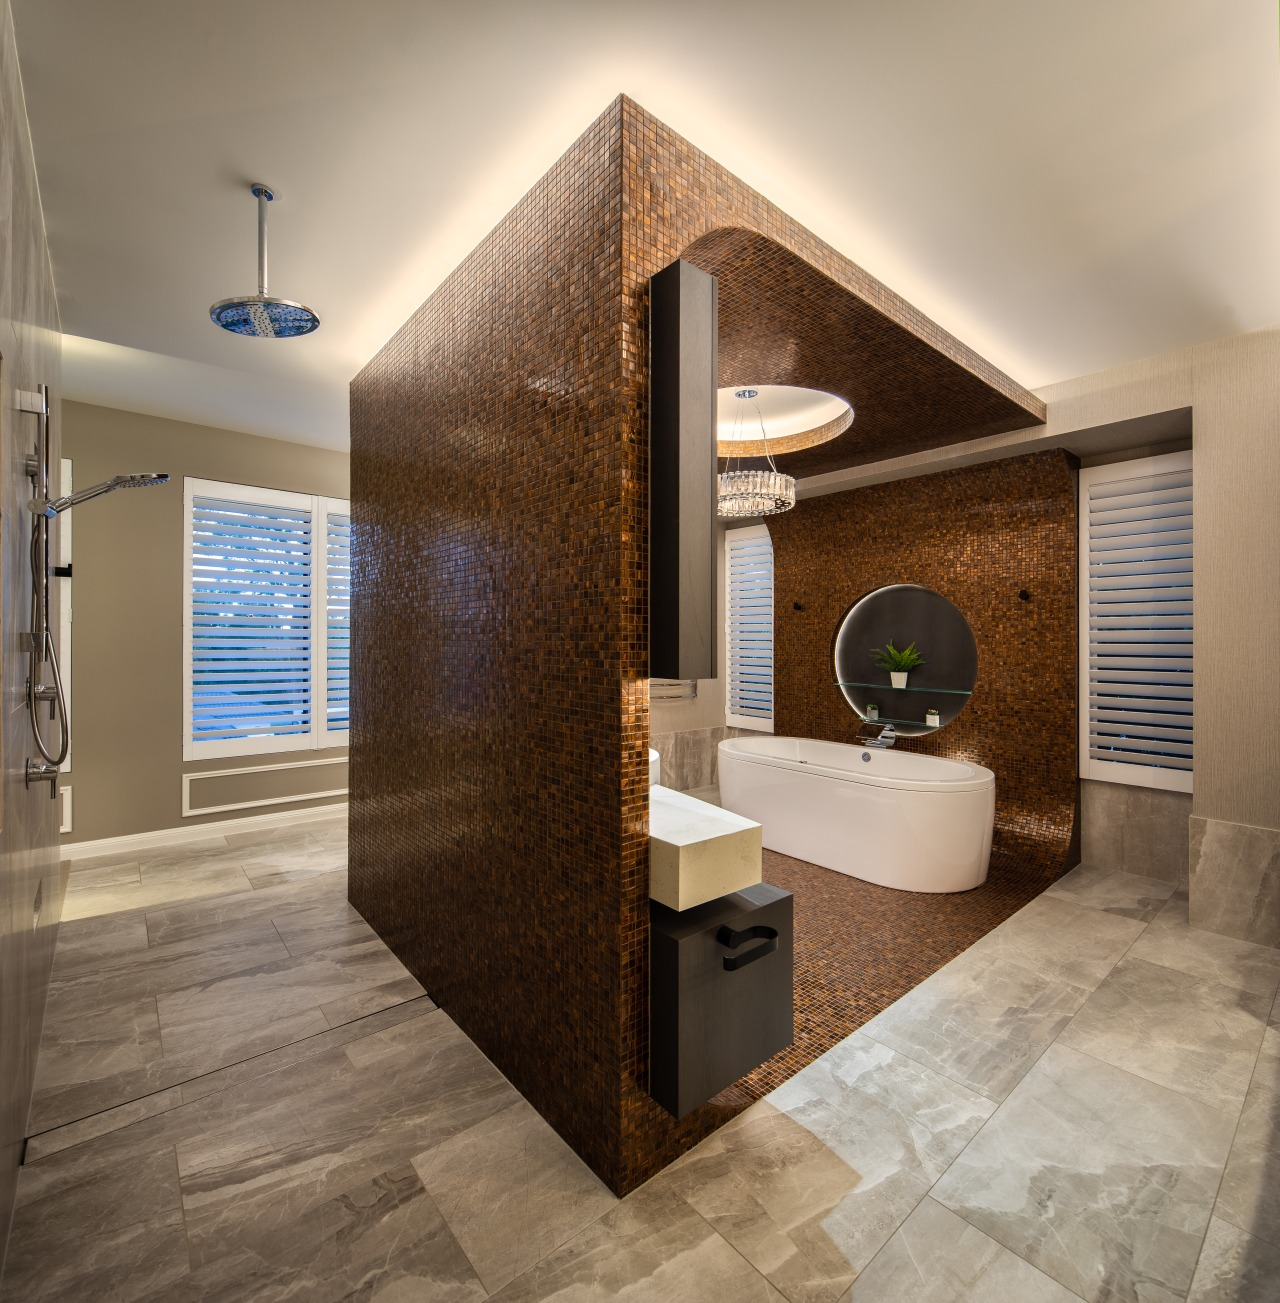 One feature of this master suite is the